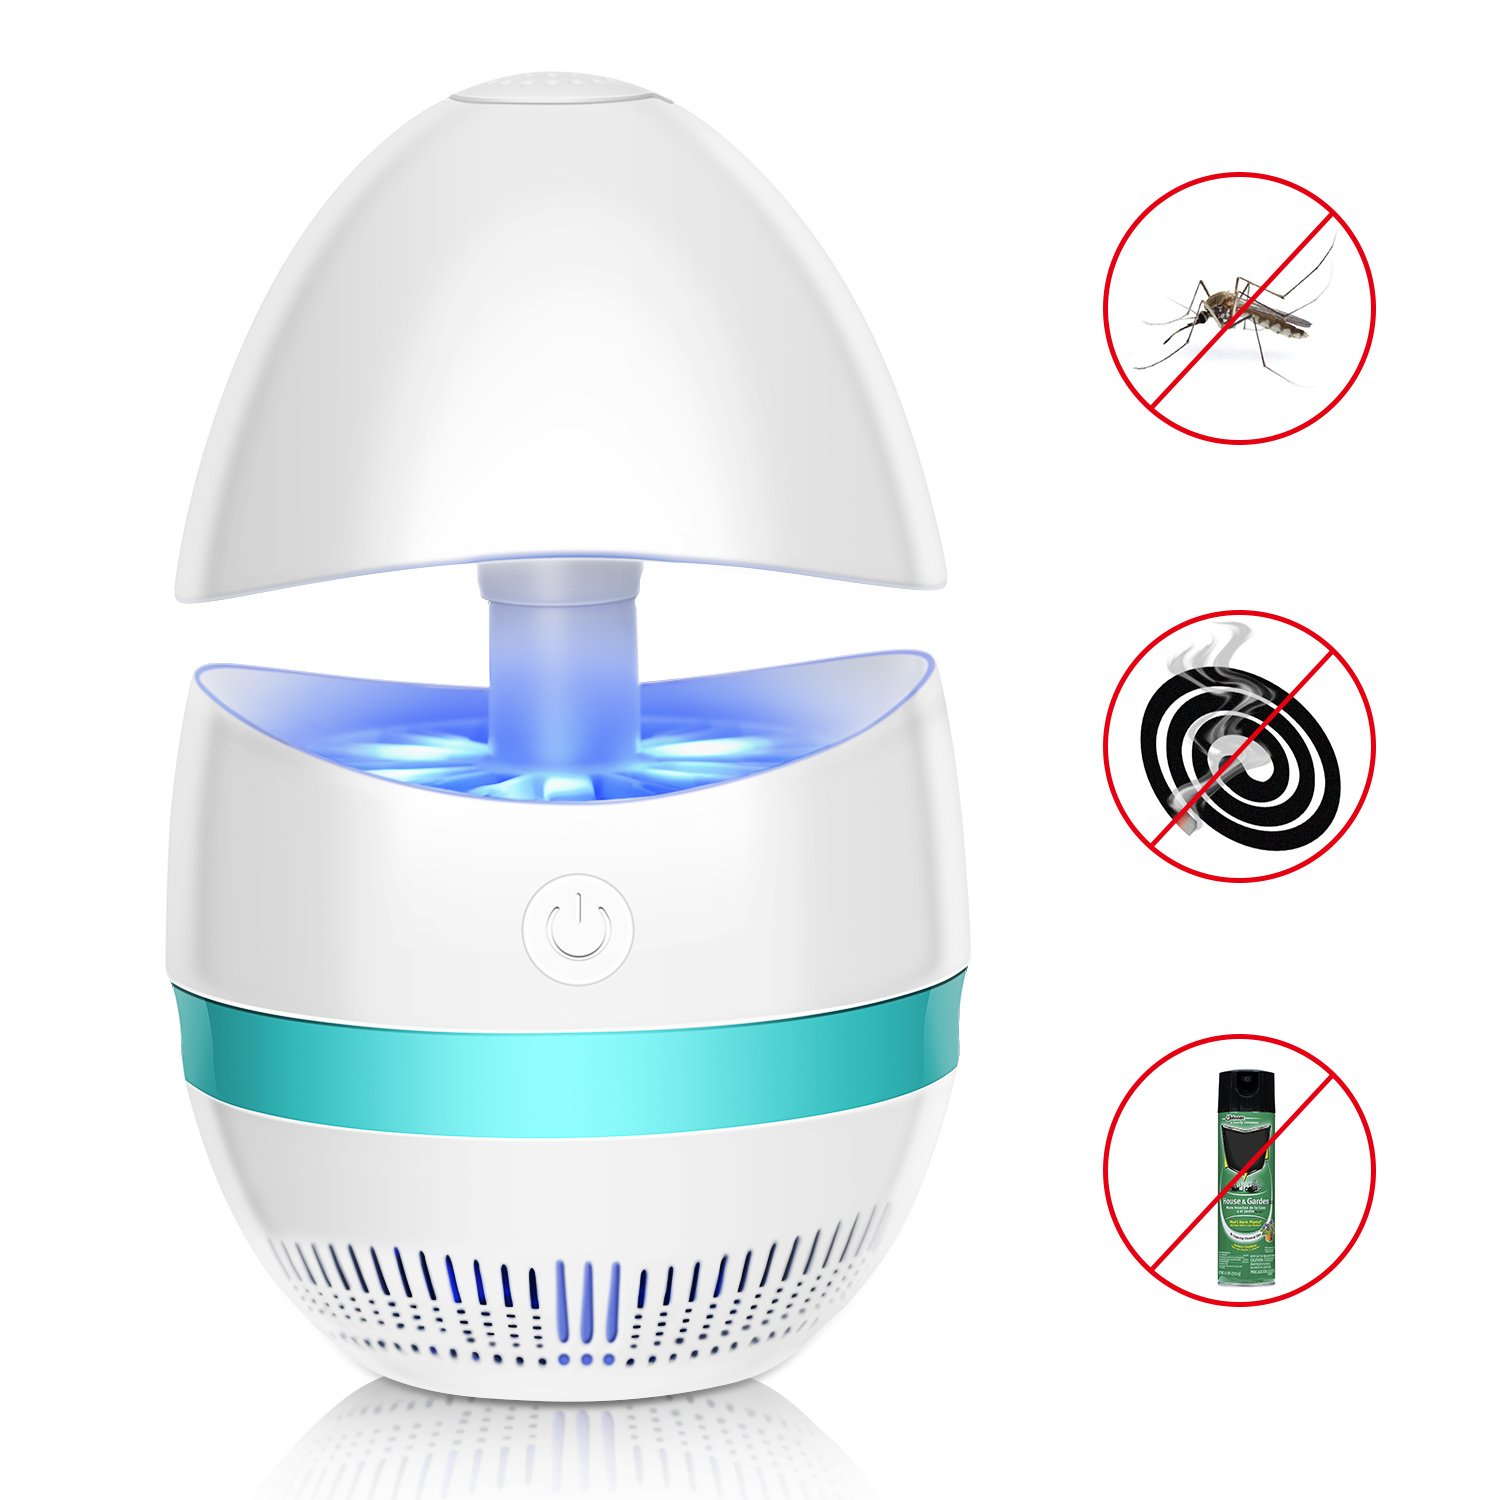 Cynkie Bug Zapper Indoor Mosquito Killer Lamp Electronic Insect Killer, Safe USB Powered Mosquito Zapper with Built in Fan Insect Trap for Indoor Bedroom Kitchen Outdoor Garden Patio Yard Office